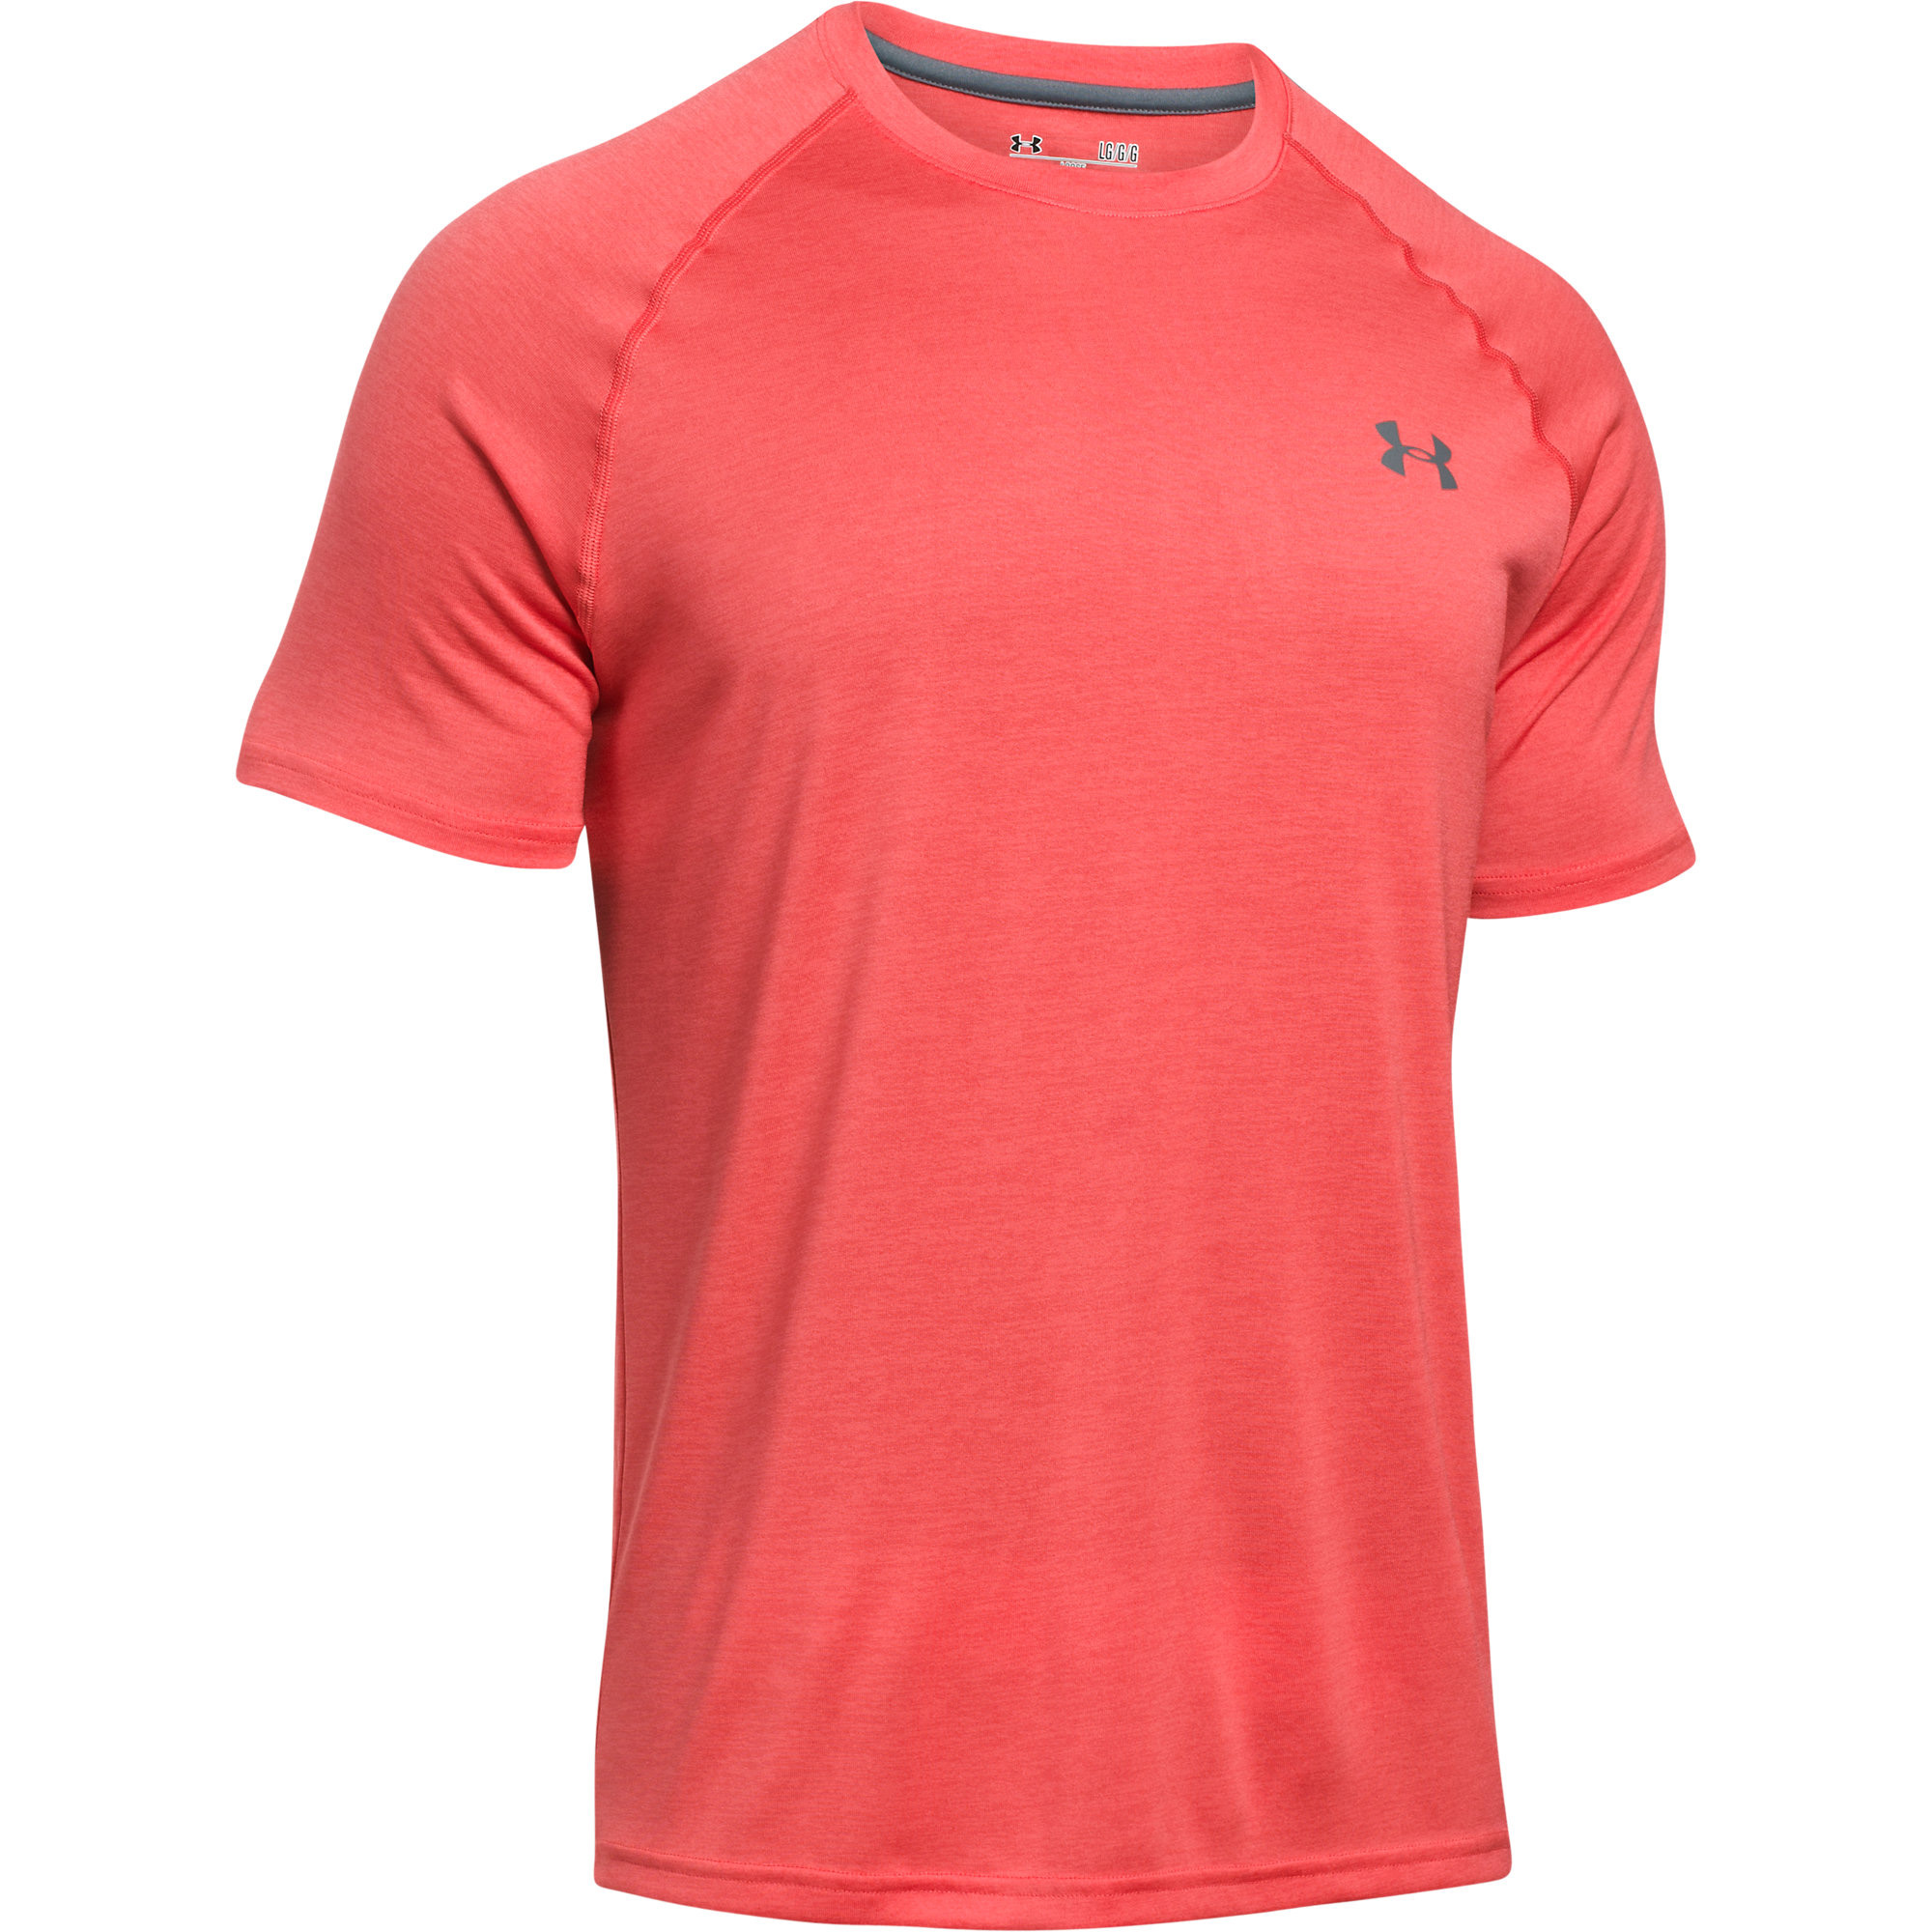 Under armour mens tech short sleeve t shirt tee ebay for Under armour men s tech short sleeve t shirt